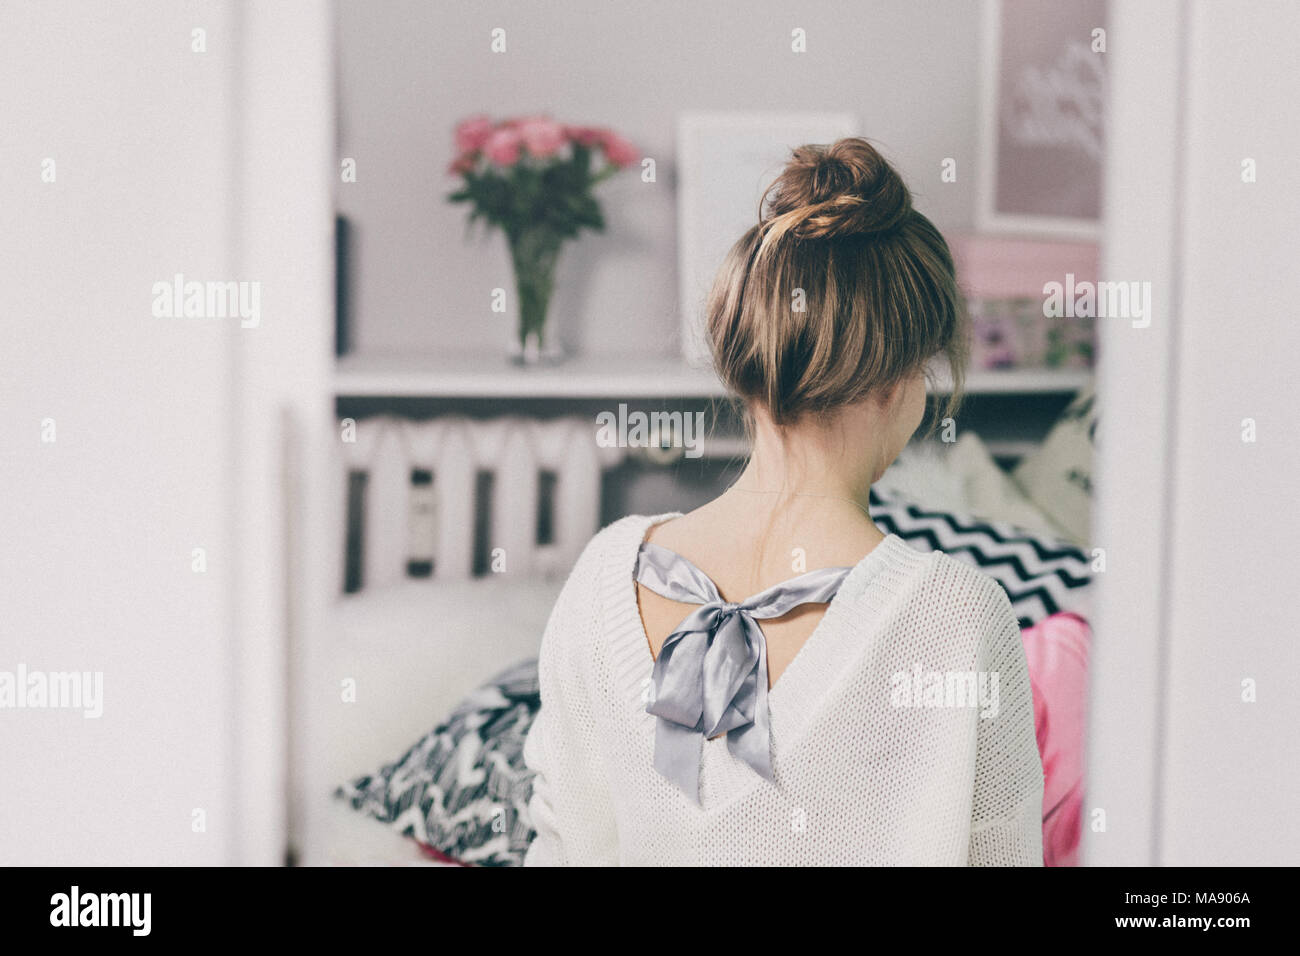 Images that shows the latest trends and symbolises fashion. - Stock Image